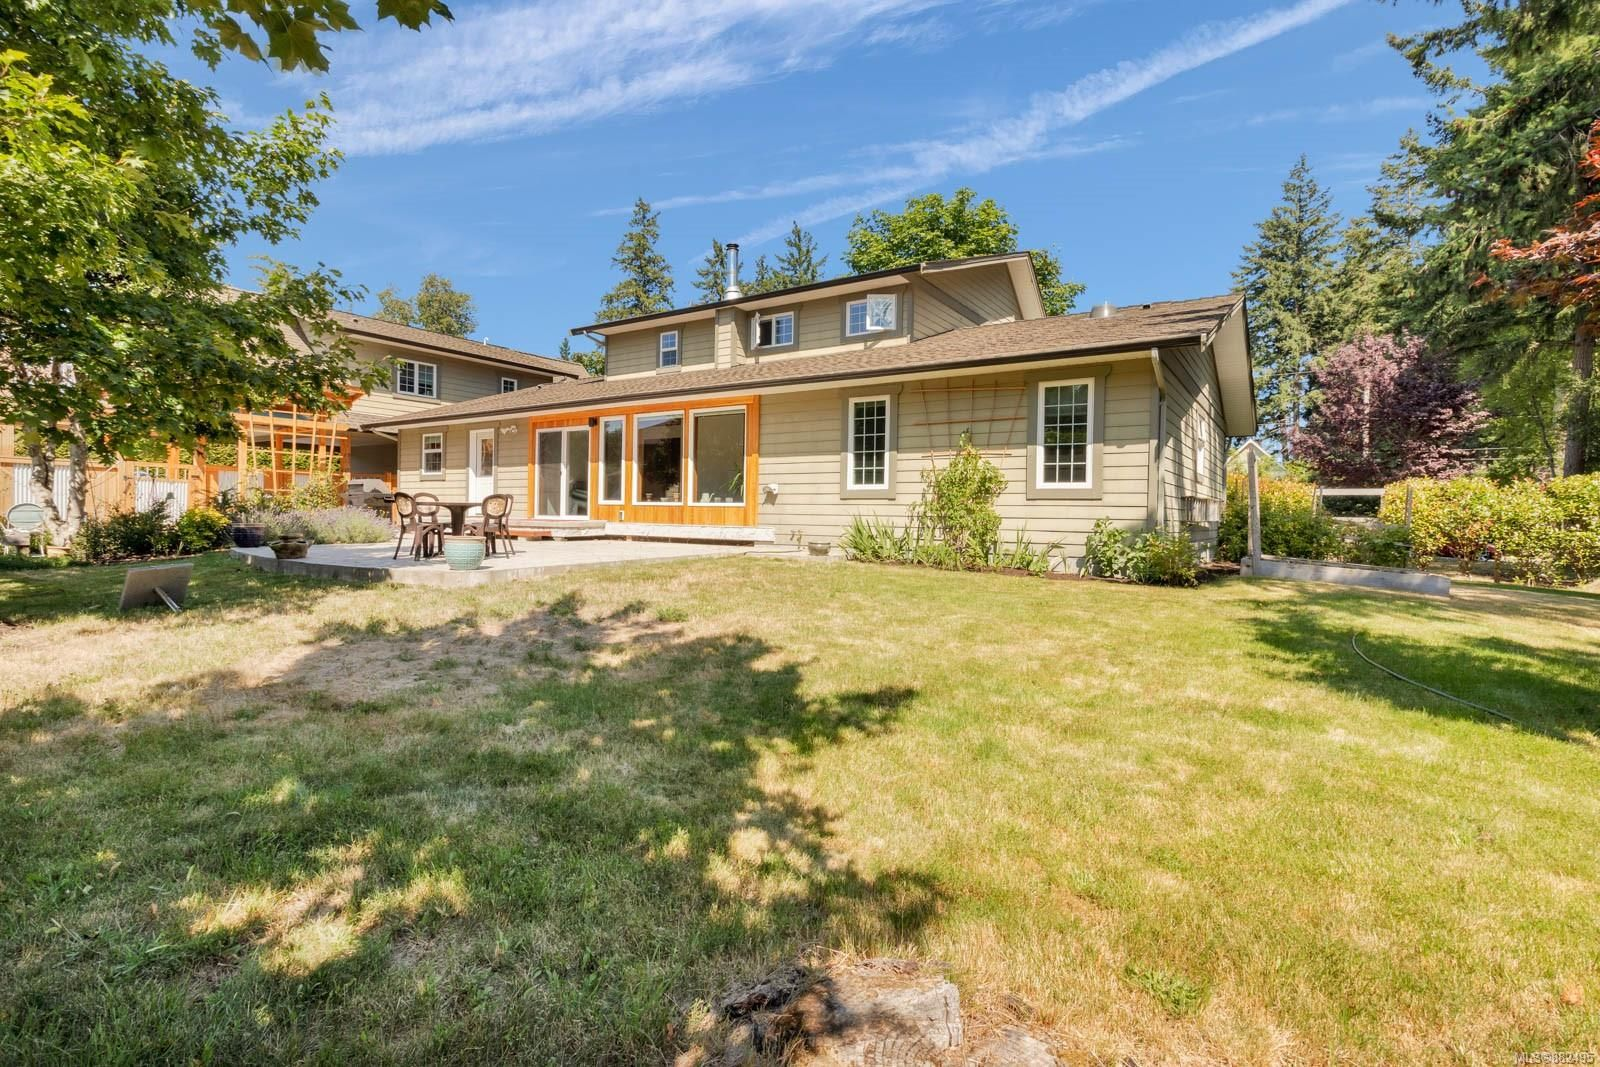 Photo 32: Photos: 375 Butchers Rd in : CV Comox (Town of) House for sale (Comox Valley)  : MLS®# 882495